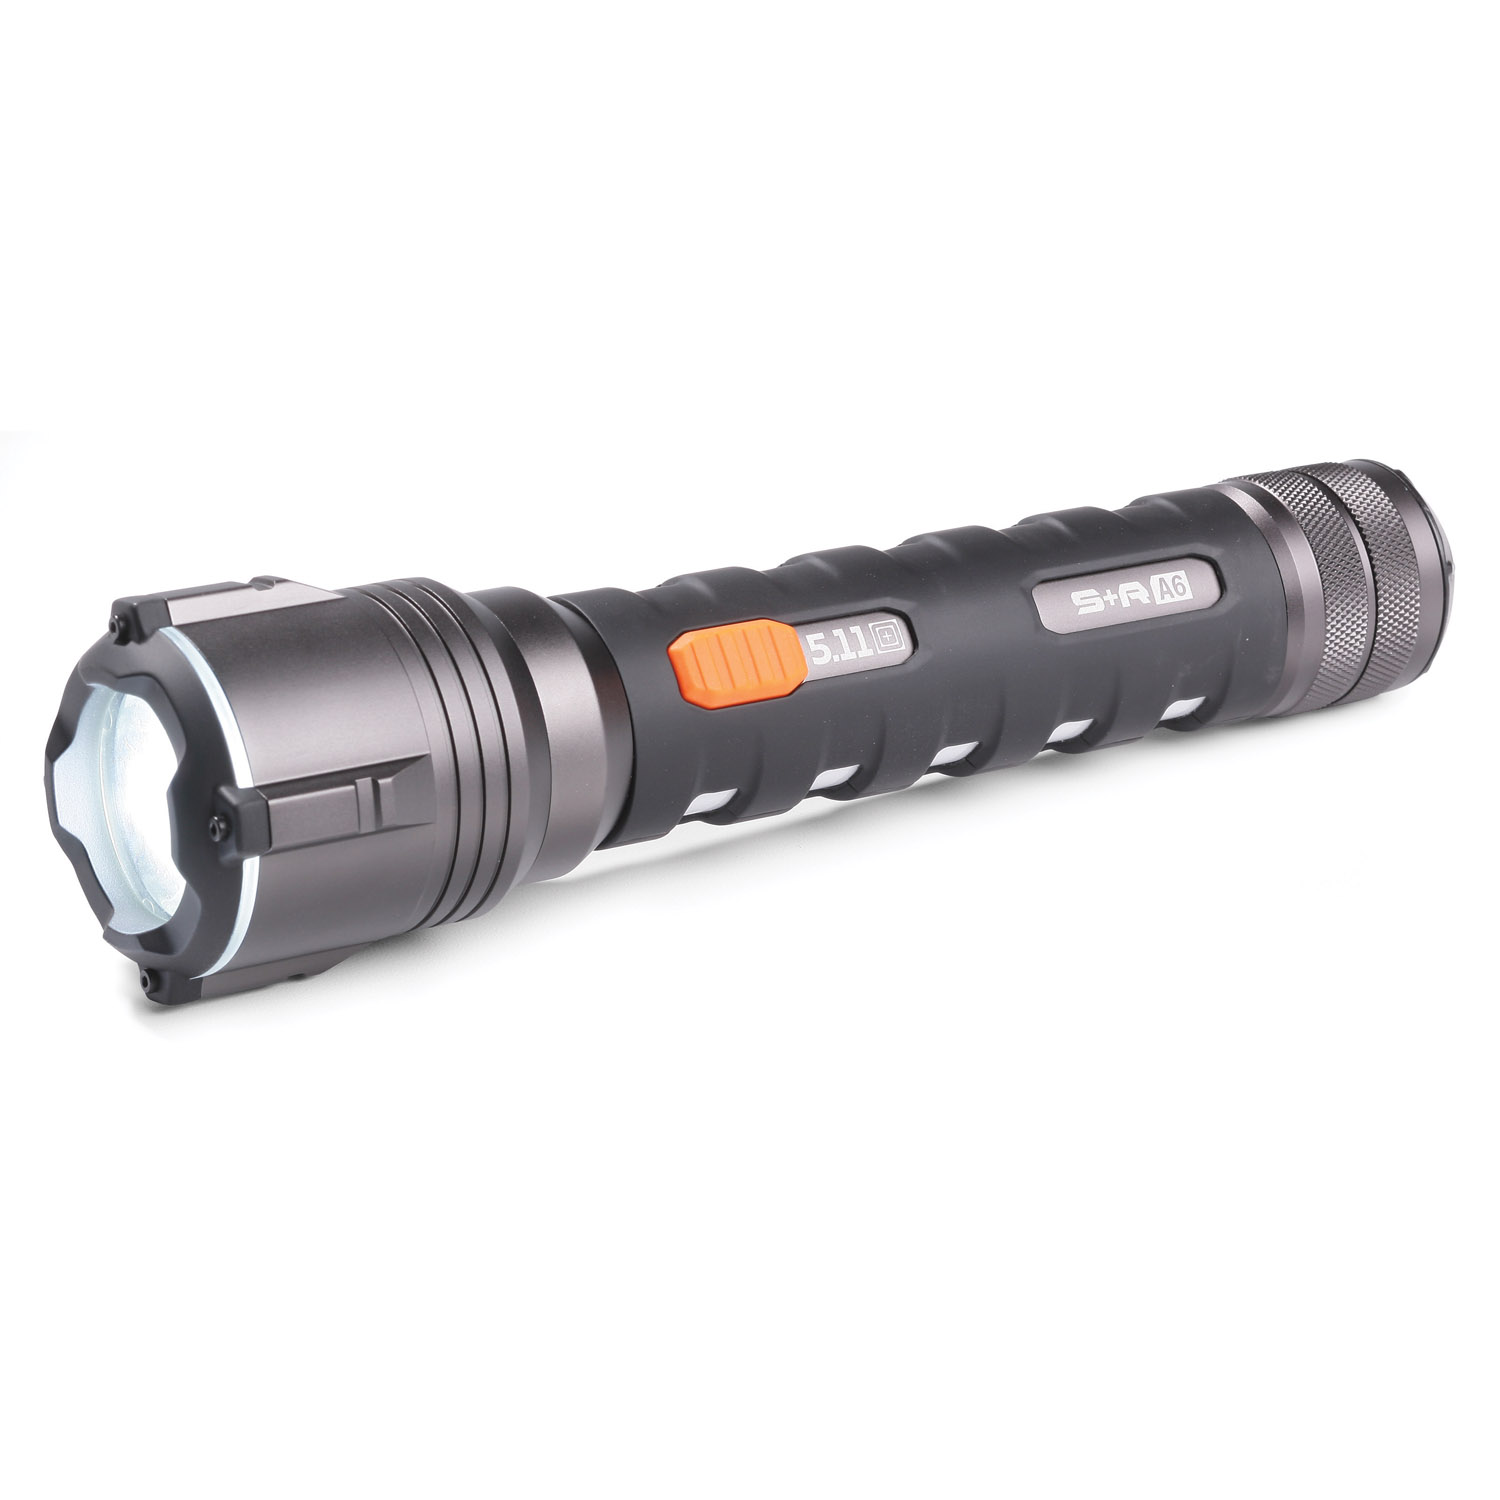 5.11 Tactical SAR A6 Flashlight